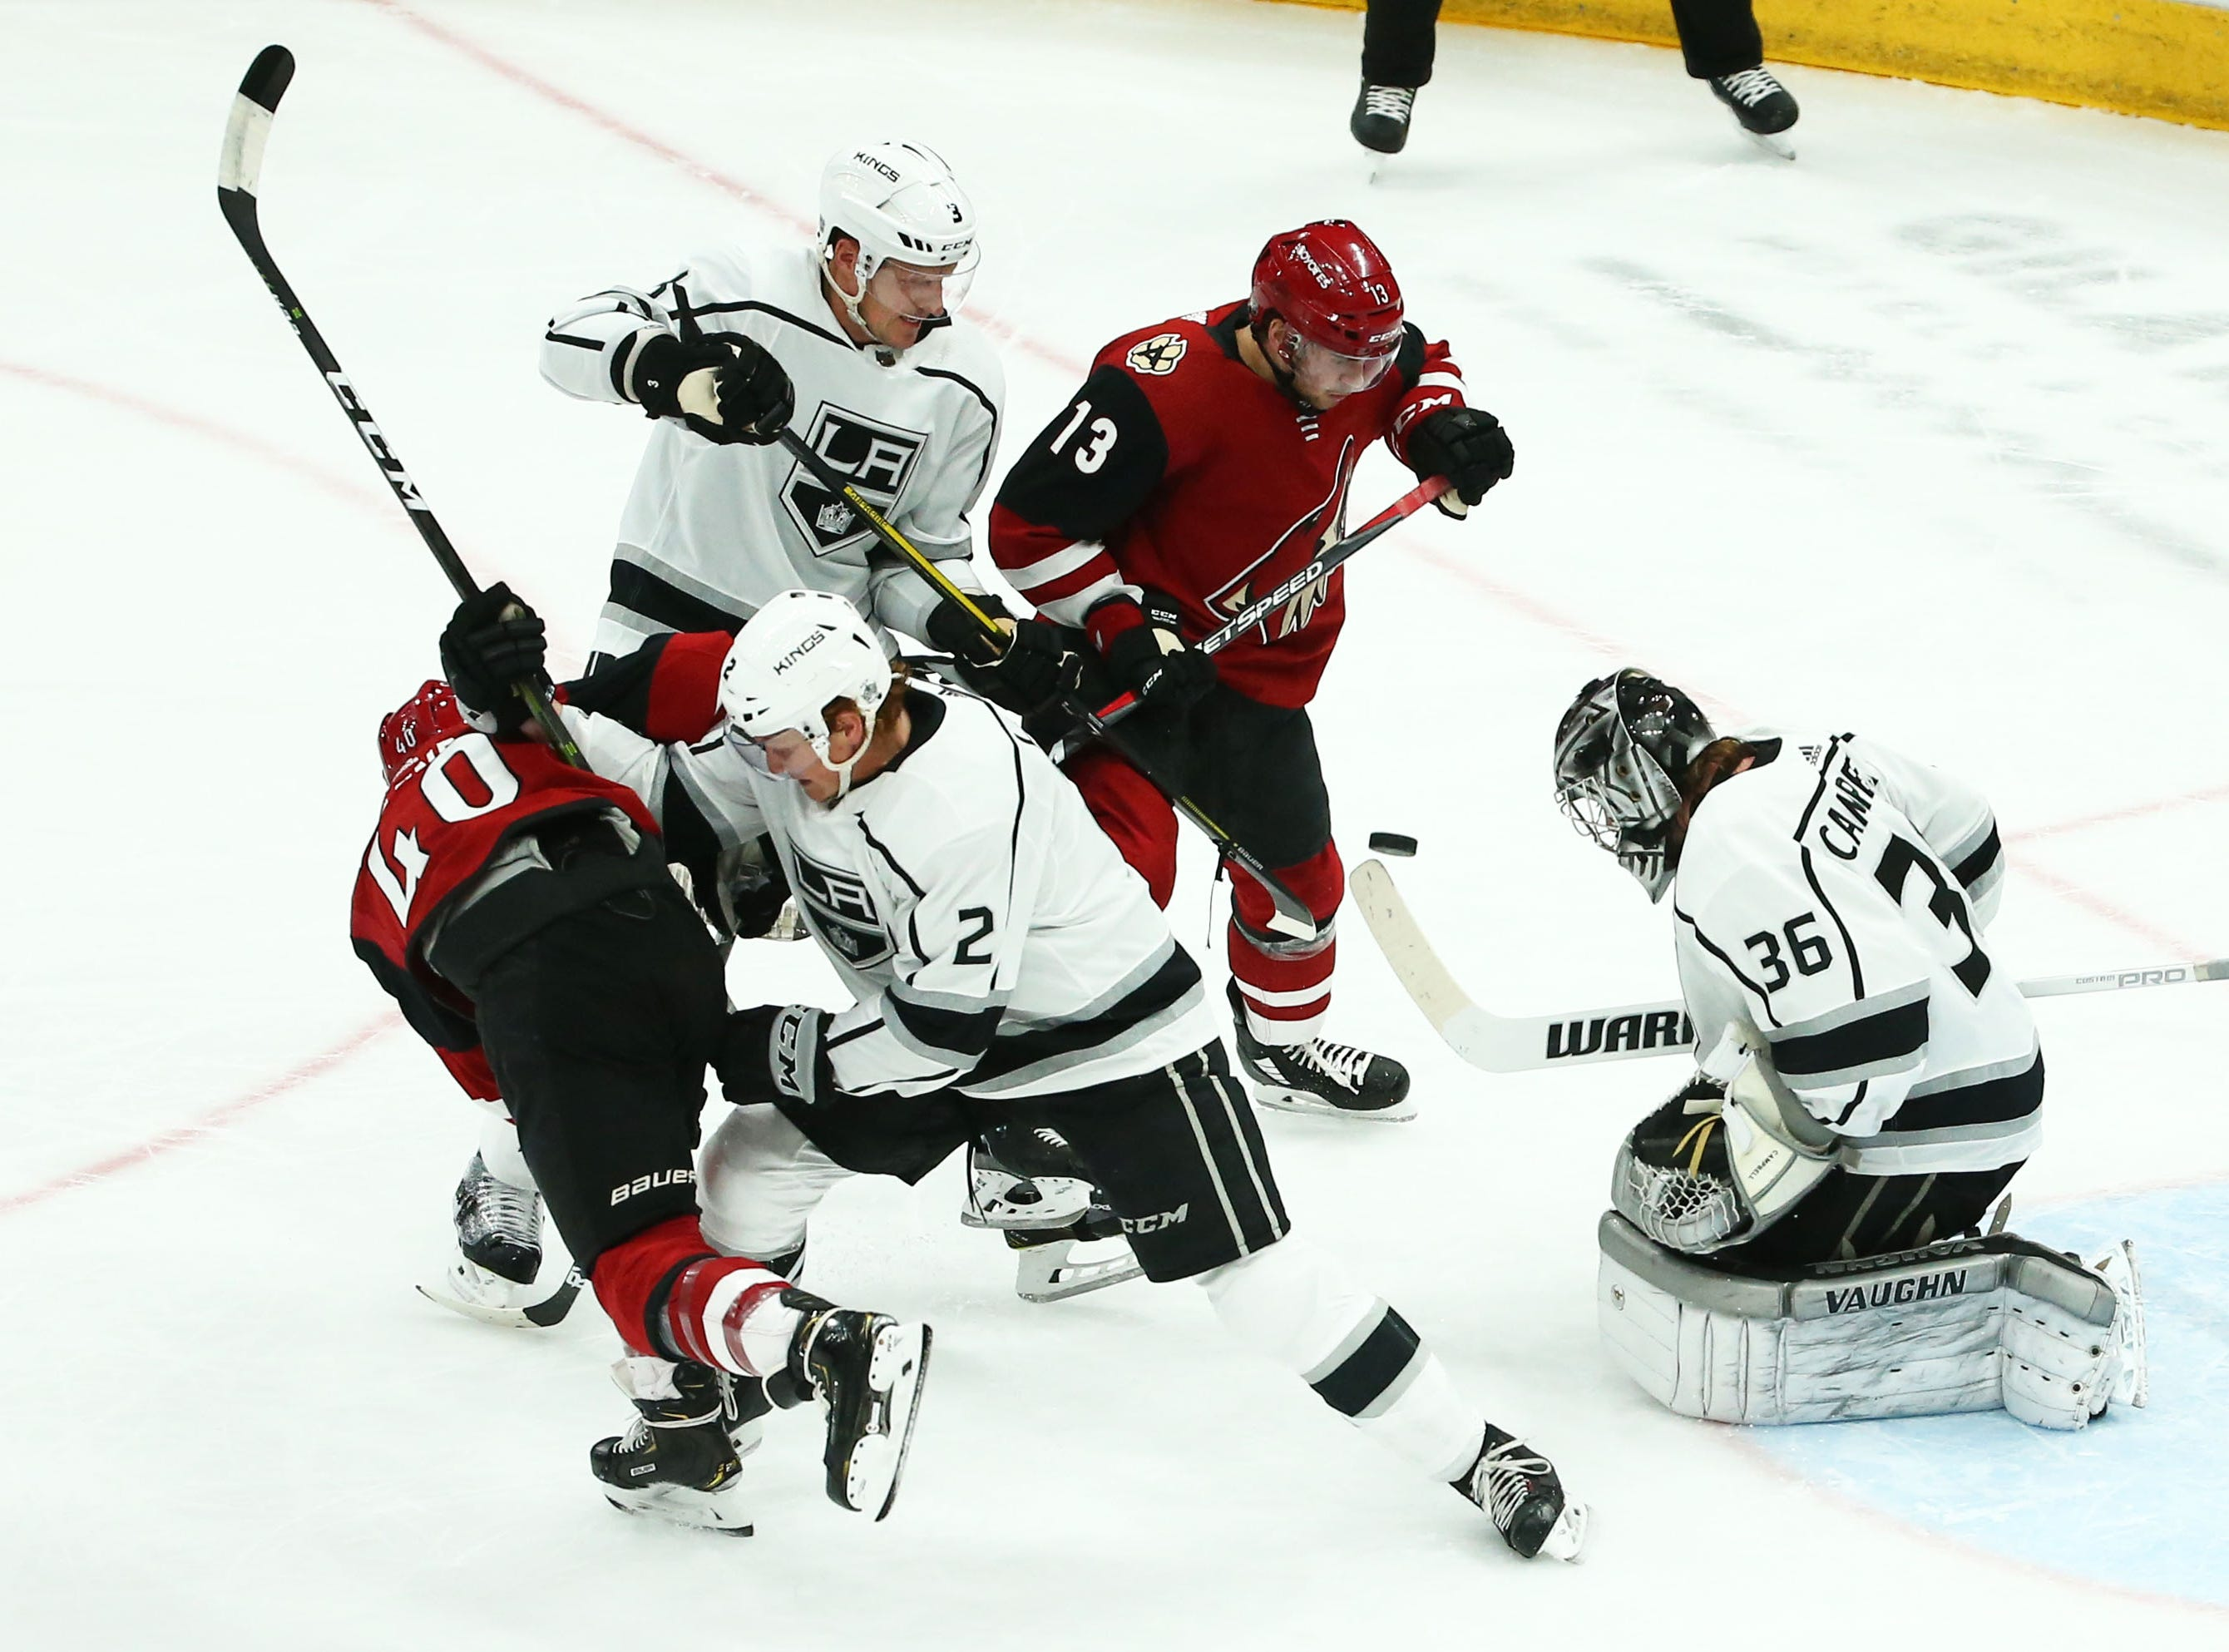 Arizona Coyotes center Vinnie Hinostroza (13) battles for the puck next to Los Angeles Kings goaltender Jack Campbell (36) in the first period on Apr. 2, 2019 at Gila River Arena in Glendale, Ariz.